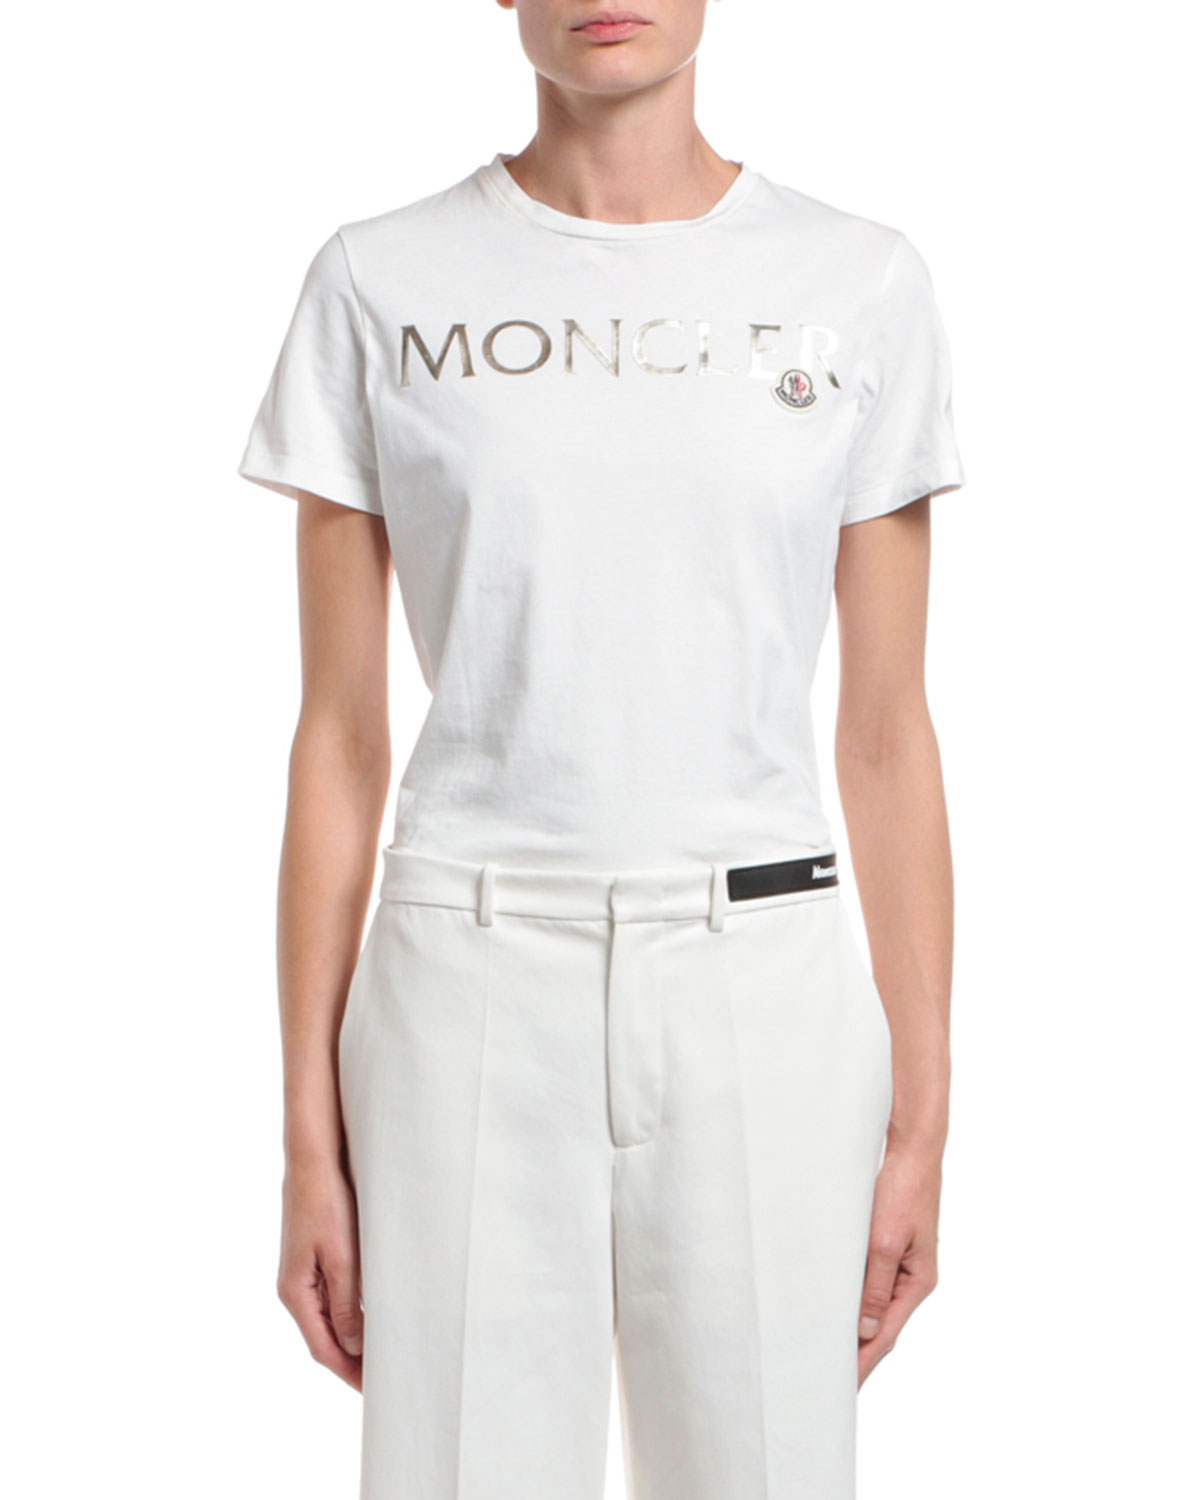 Moncler Short-Sleeve Cotton Gold Logo T-Shirt